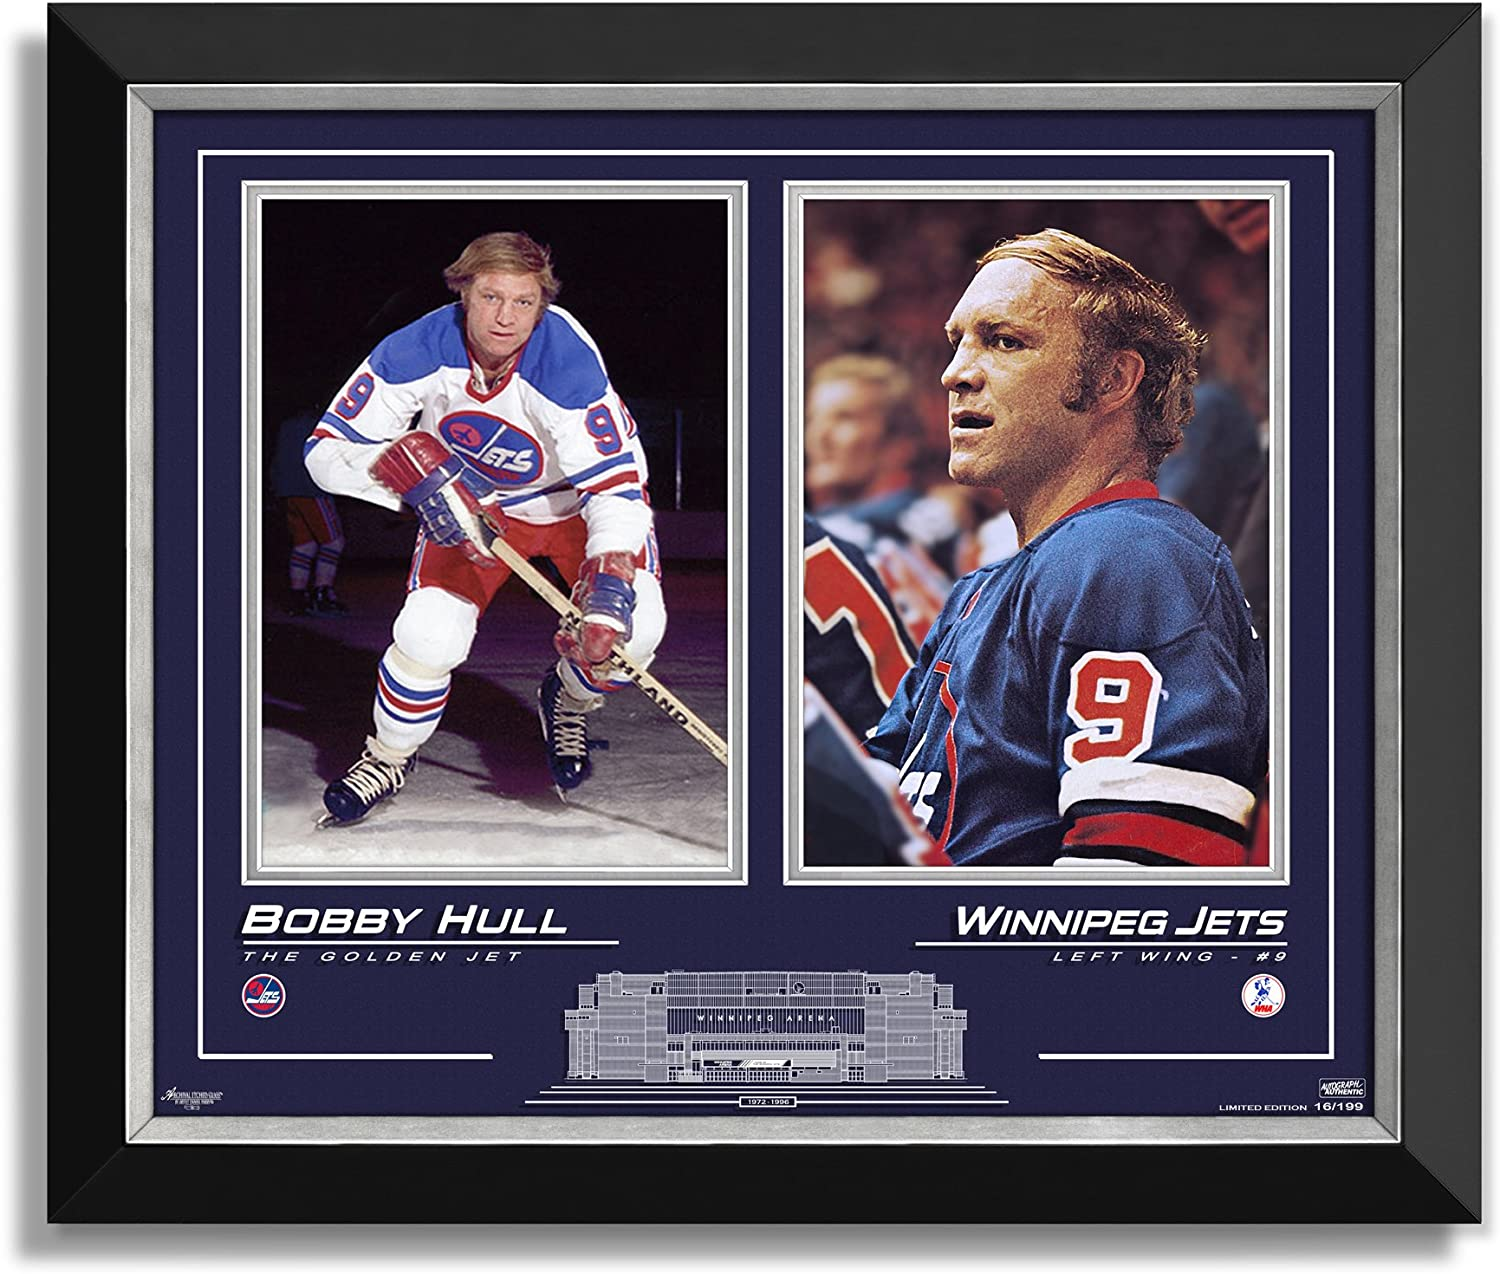 Bobby Hull Winnipeg Jets Limited Edition 16 of 199  Collector Presentation